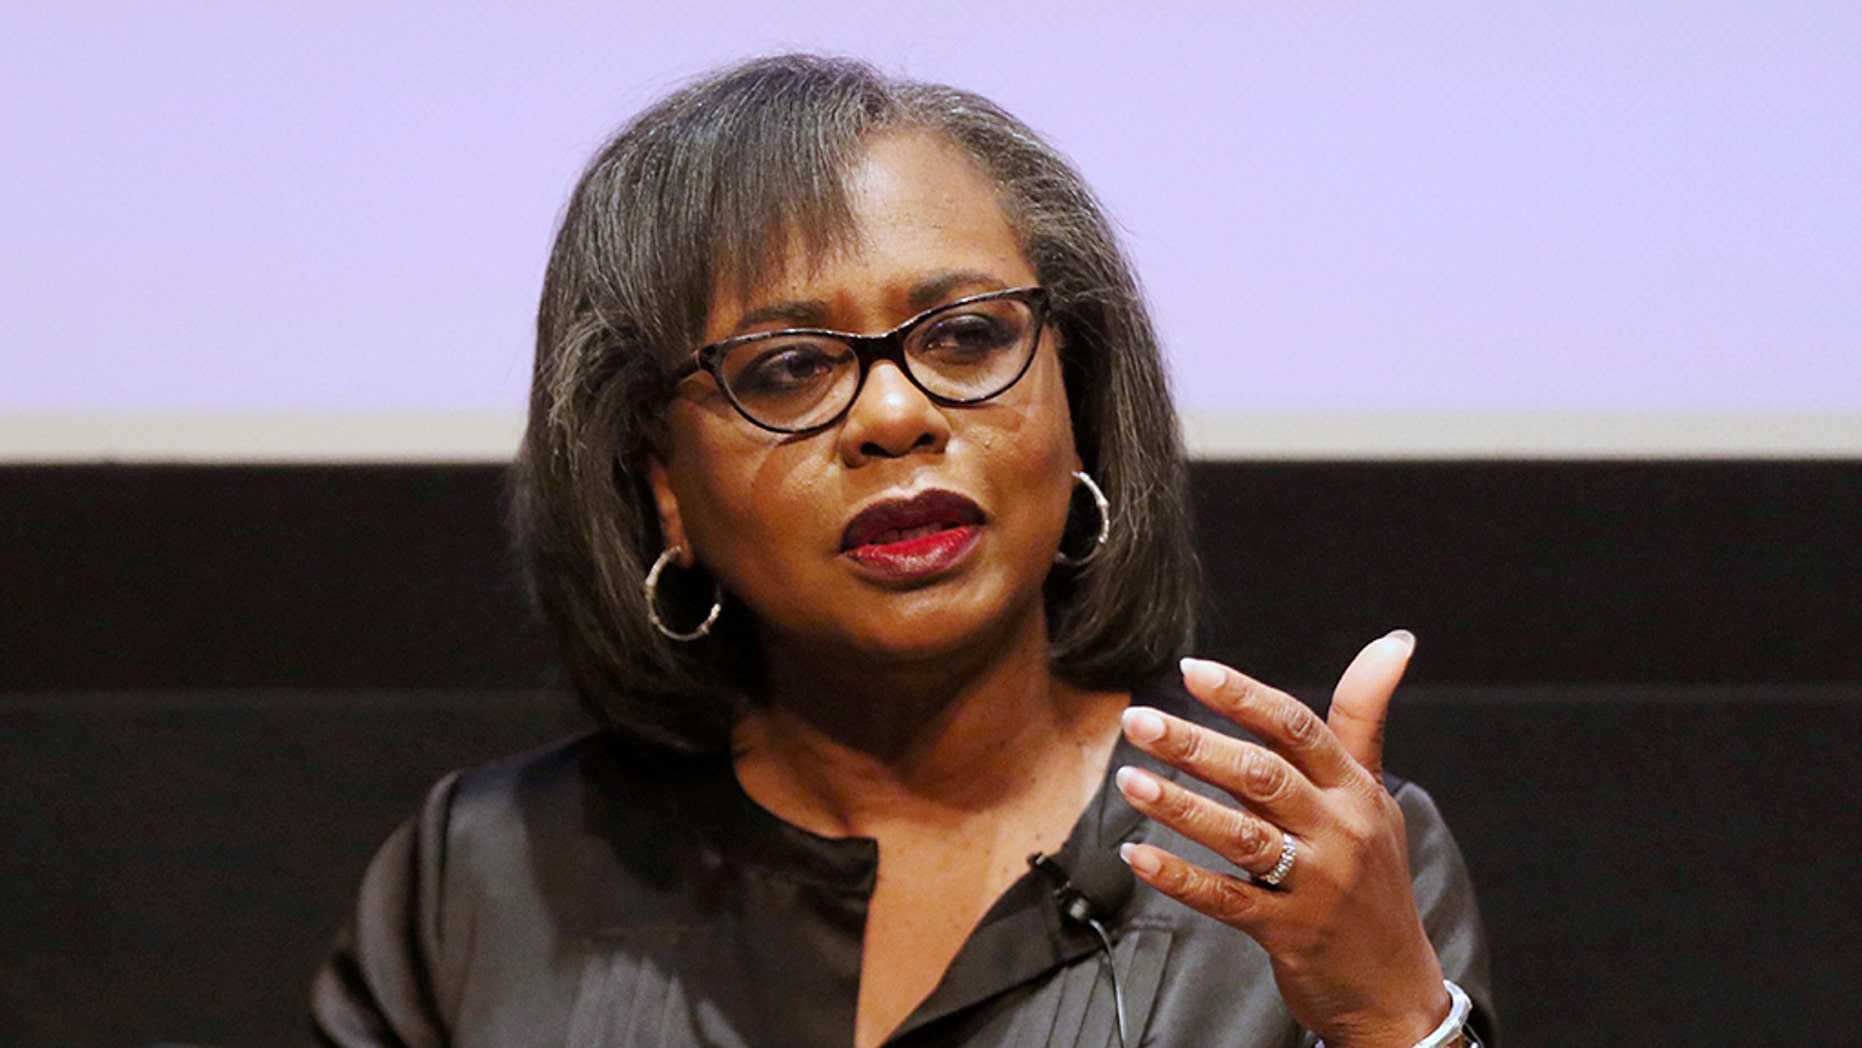 Anita Hill has expressed her concern that female presidential candidates for the 2020 election are not being taken as seriously as their male counterparts